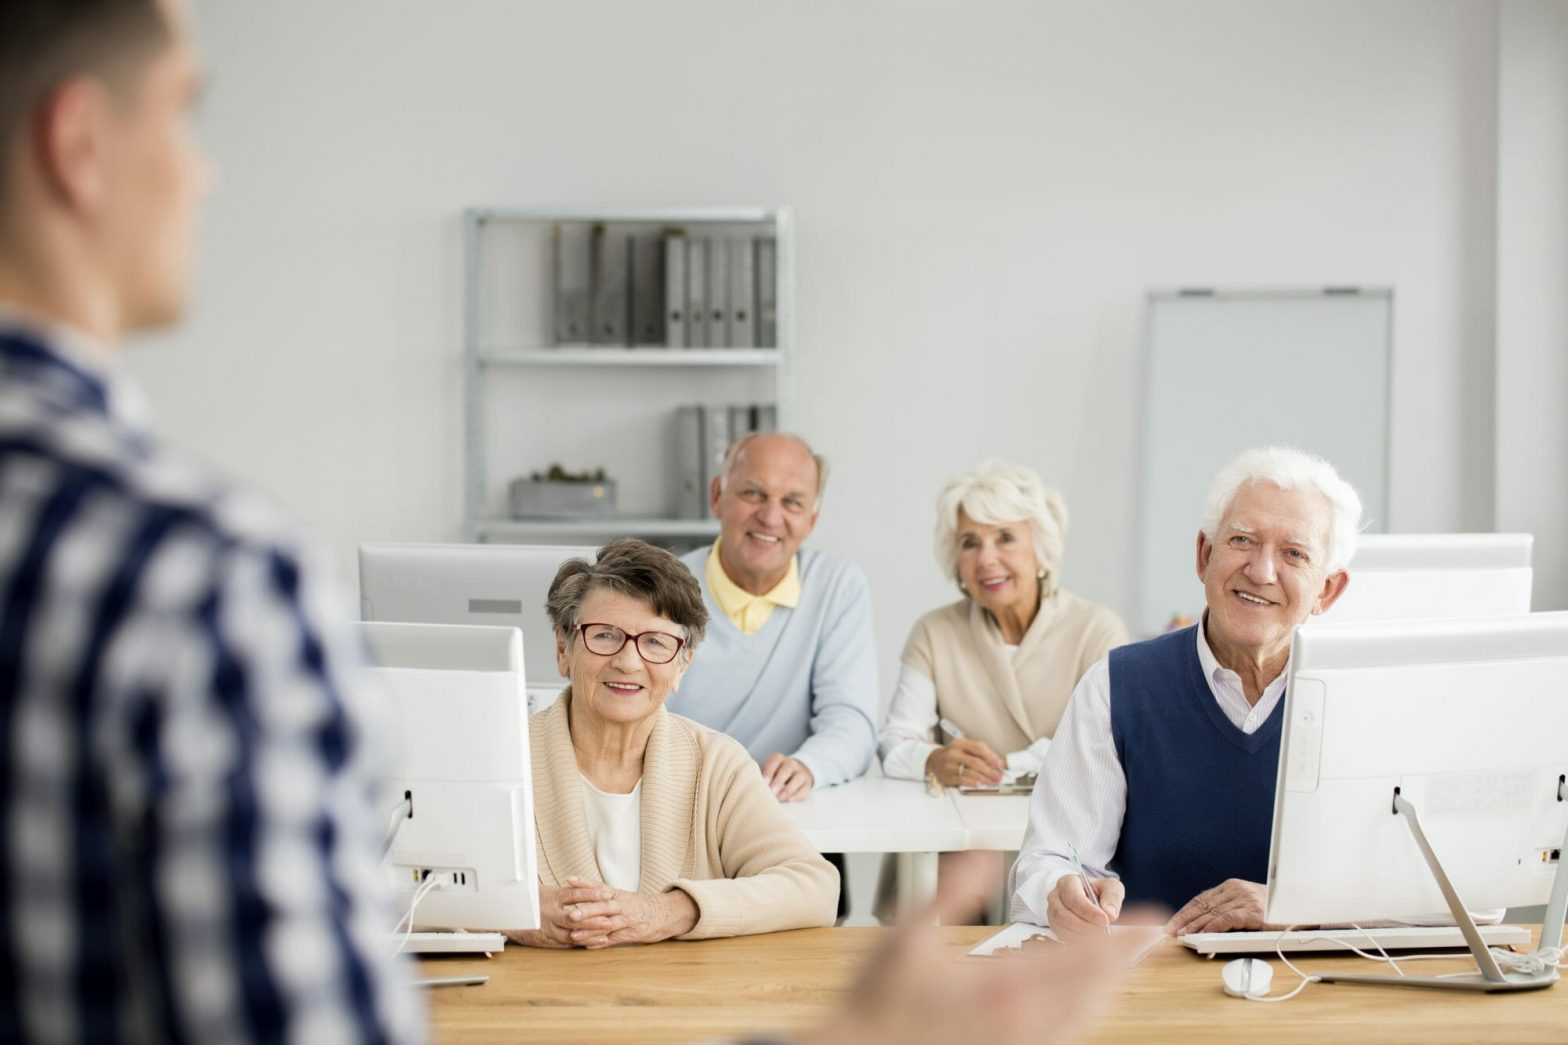 Lifelong Learning: Good for Seniors' Minds & Bodies